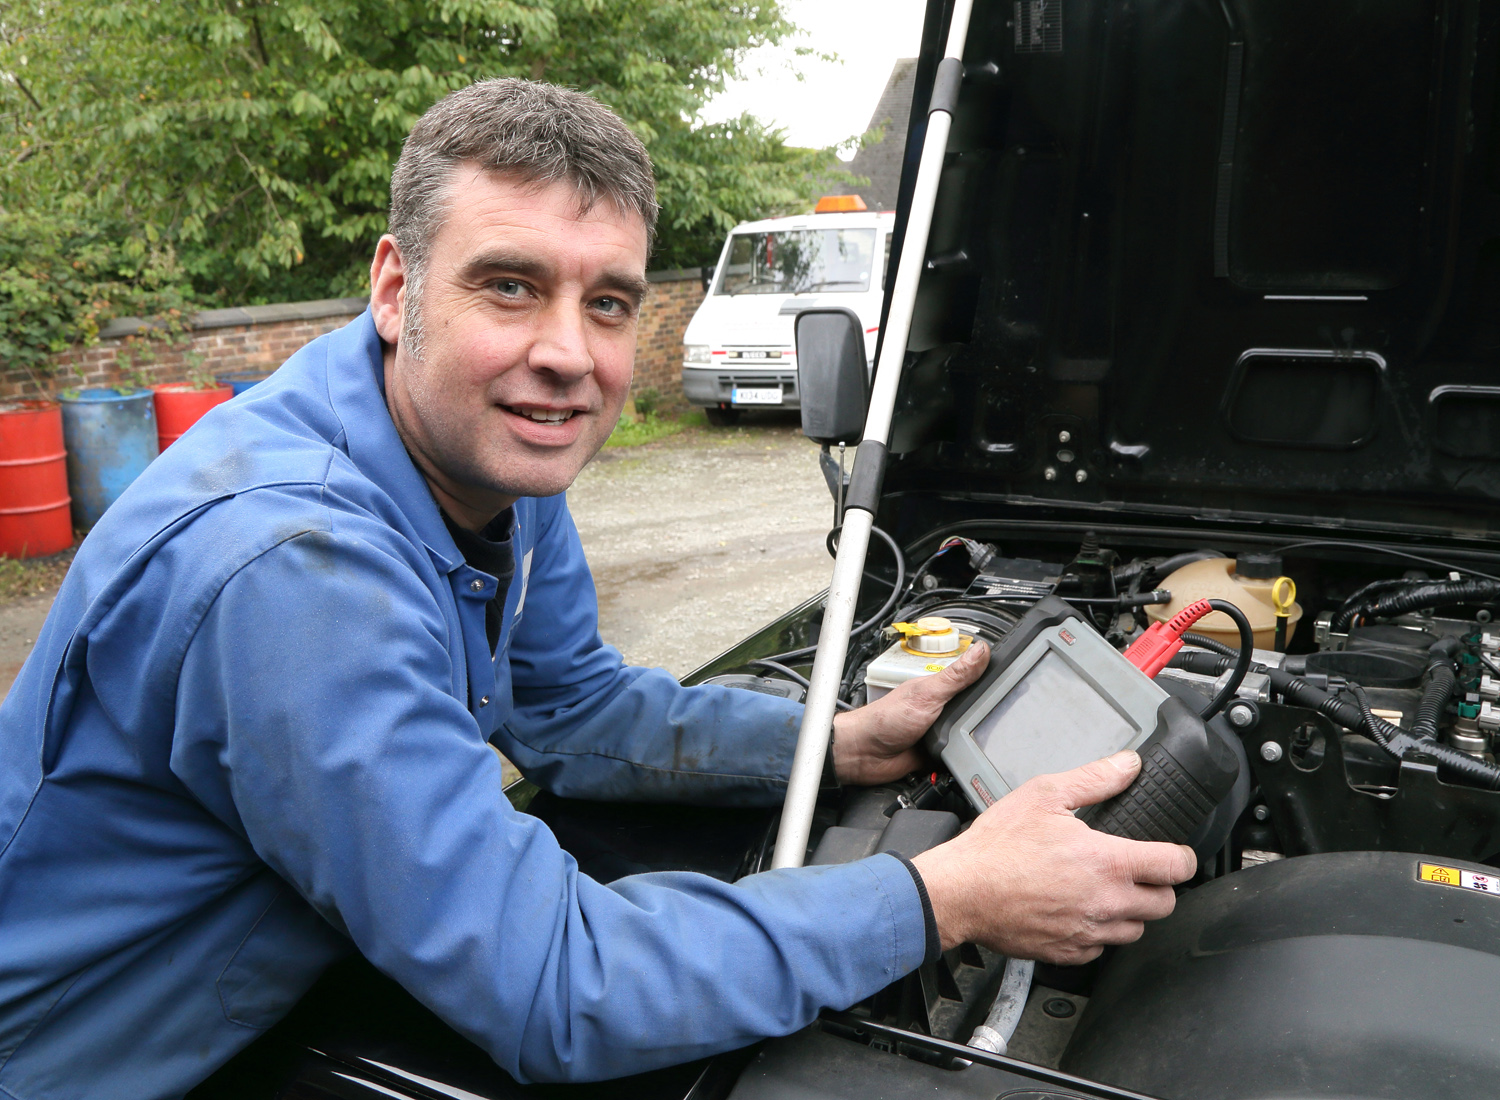 On call firefighter Jeremy Chambers (44), a mechanic at Prees Auto, has dyslexia and Meares Irlen syndrome and is now getting filtered glasses to make reading easier.